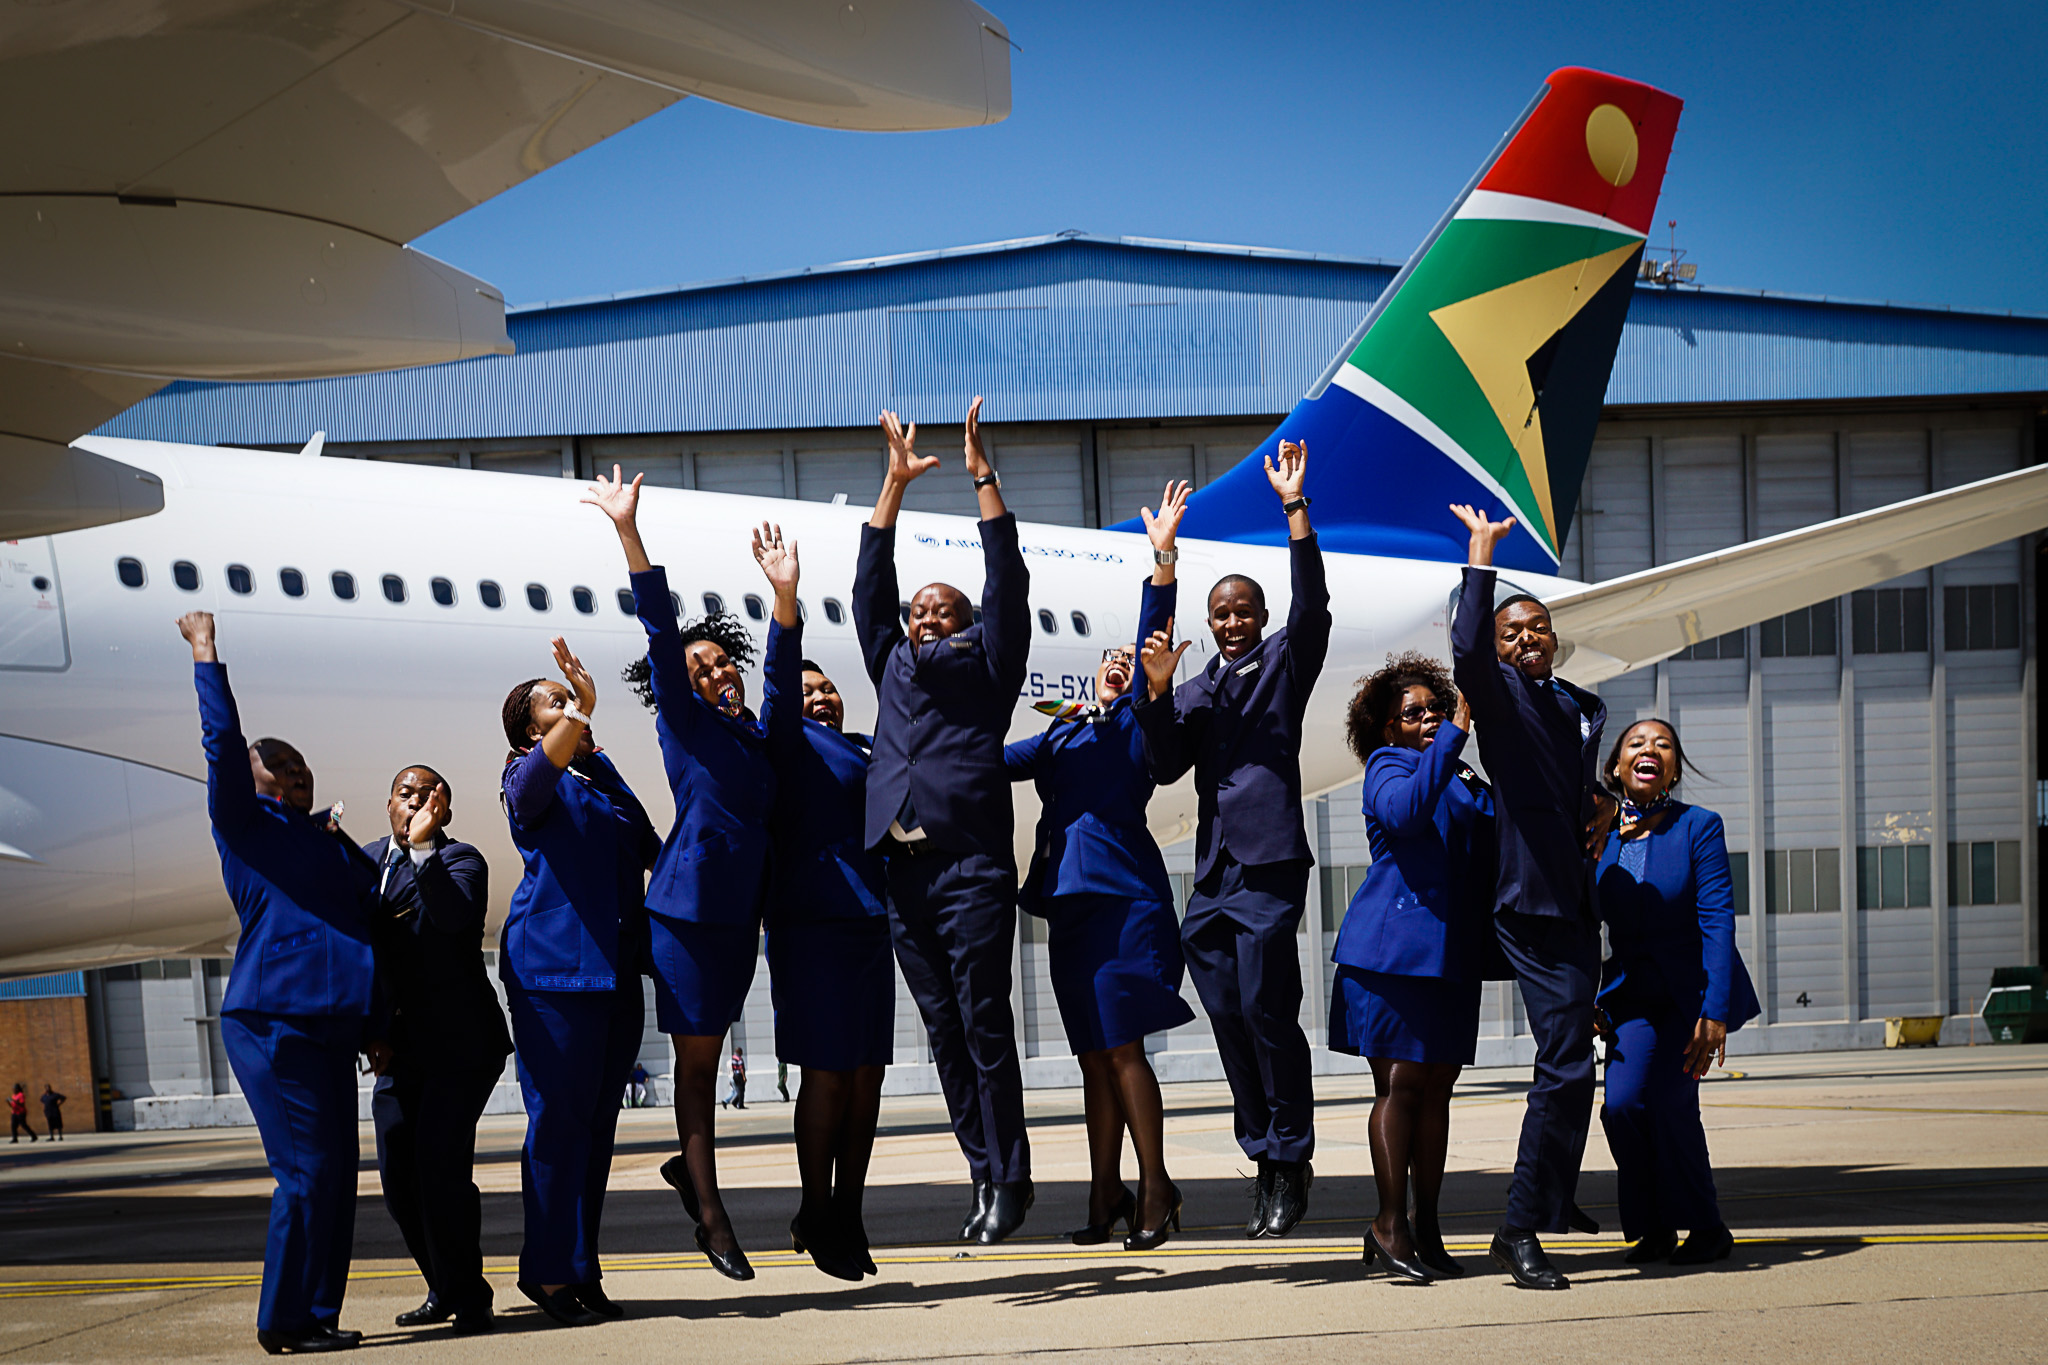 Phones can stay online on flights next year, says SAA